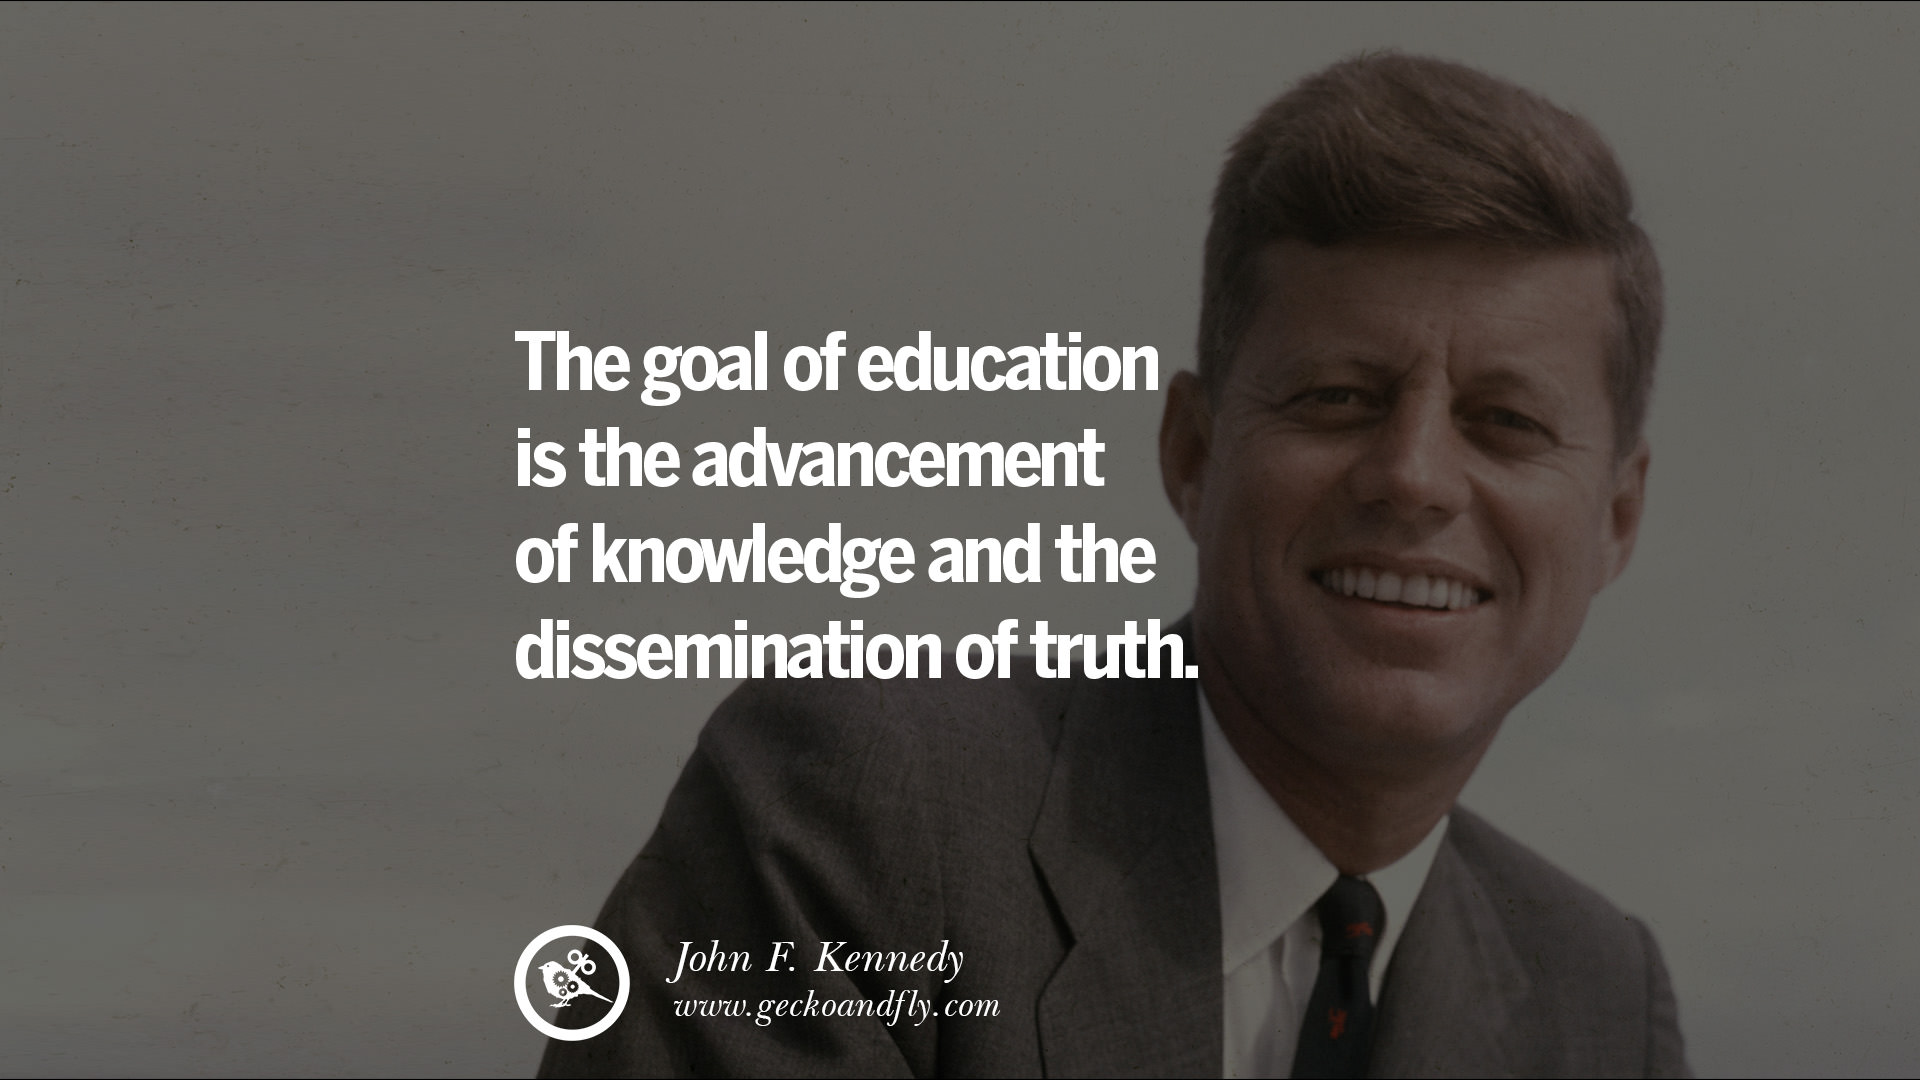 an analysis of knowledge by john f kennedy 2018-6-16 1 assignment for university of mauritius module: themes in american studies lecturer: dr s wong the american dream: reading john f kennedy's inaugural speech against whedon's the avengers the idea of the american dream is a set of ideals and ethics which is promised to all citizens of the.